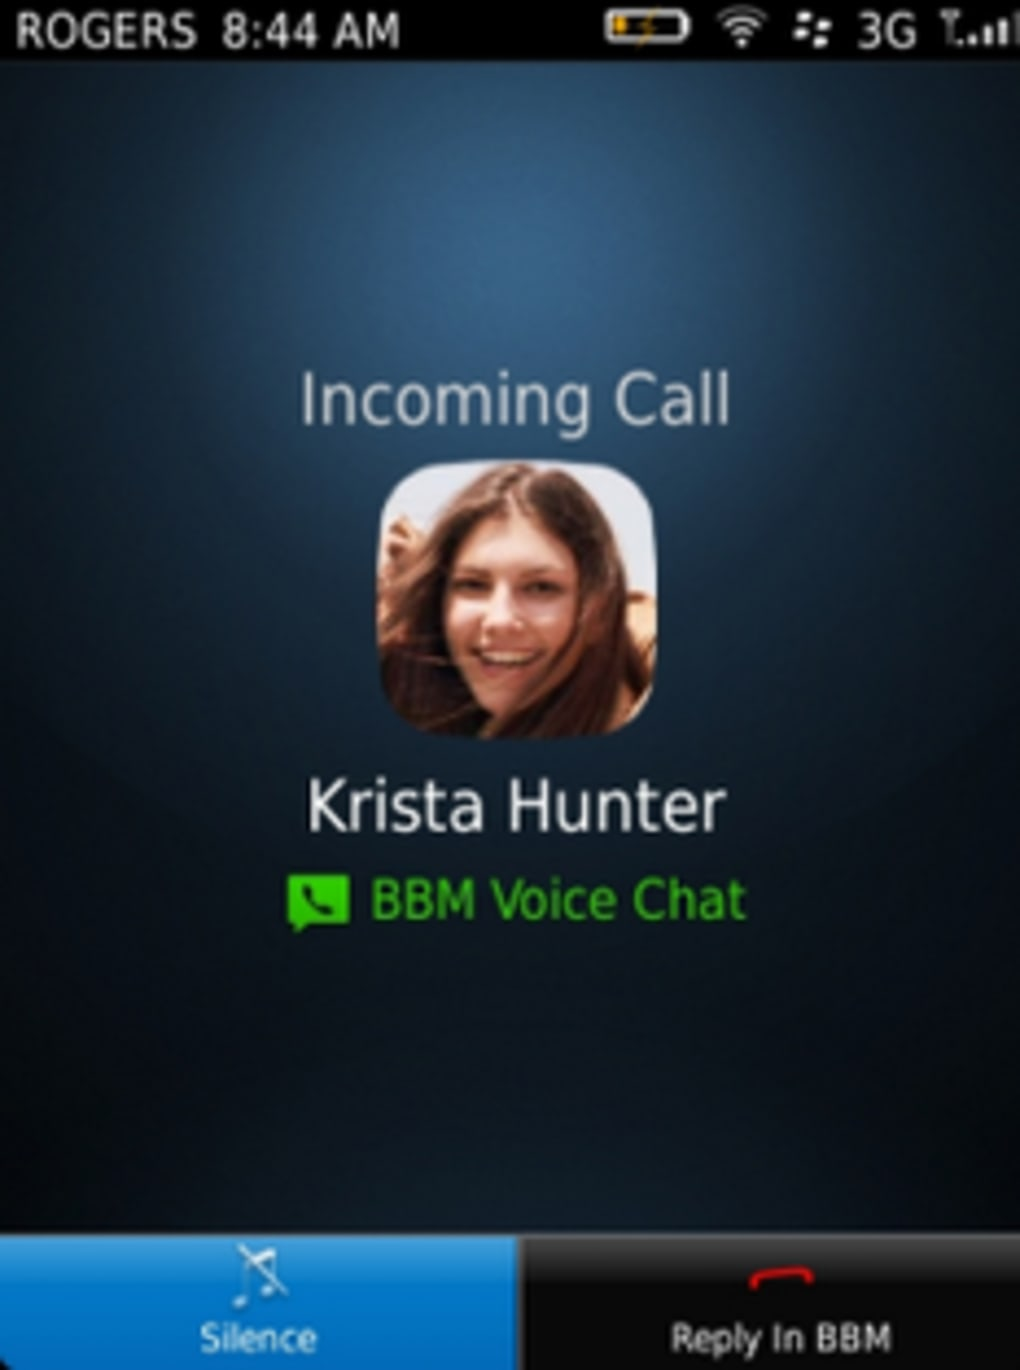 Download bbm voice chat for blackberry